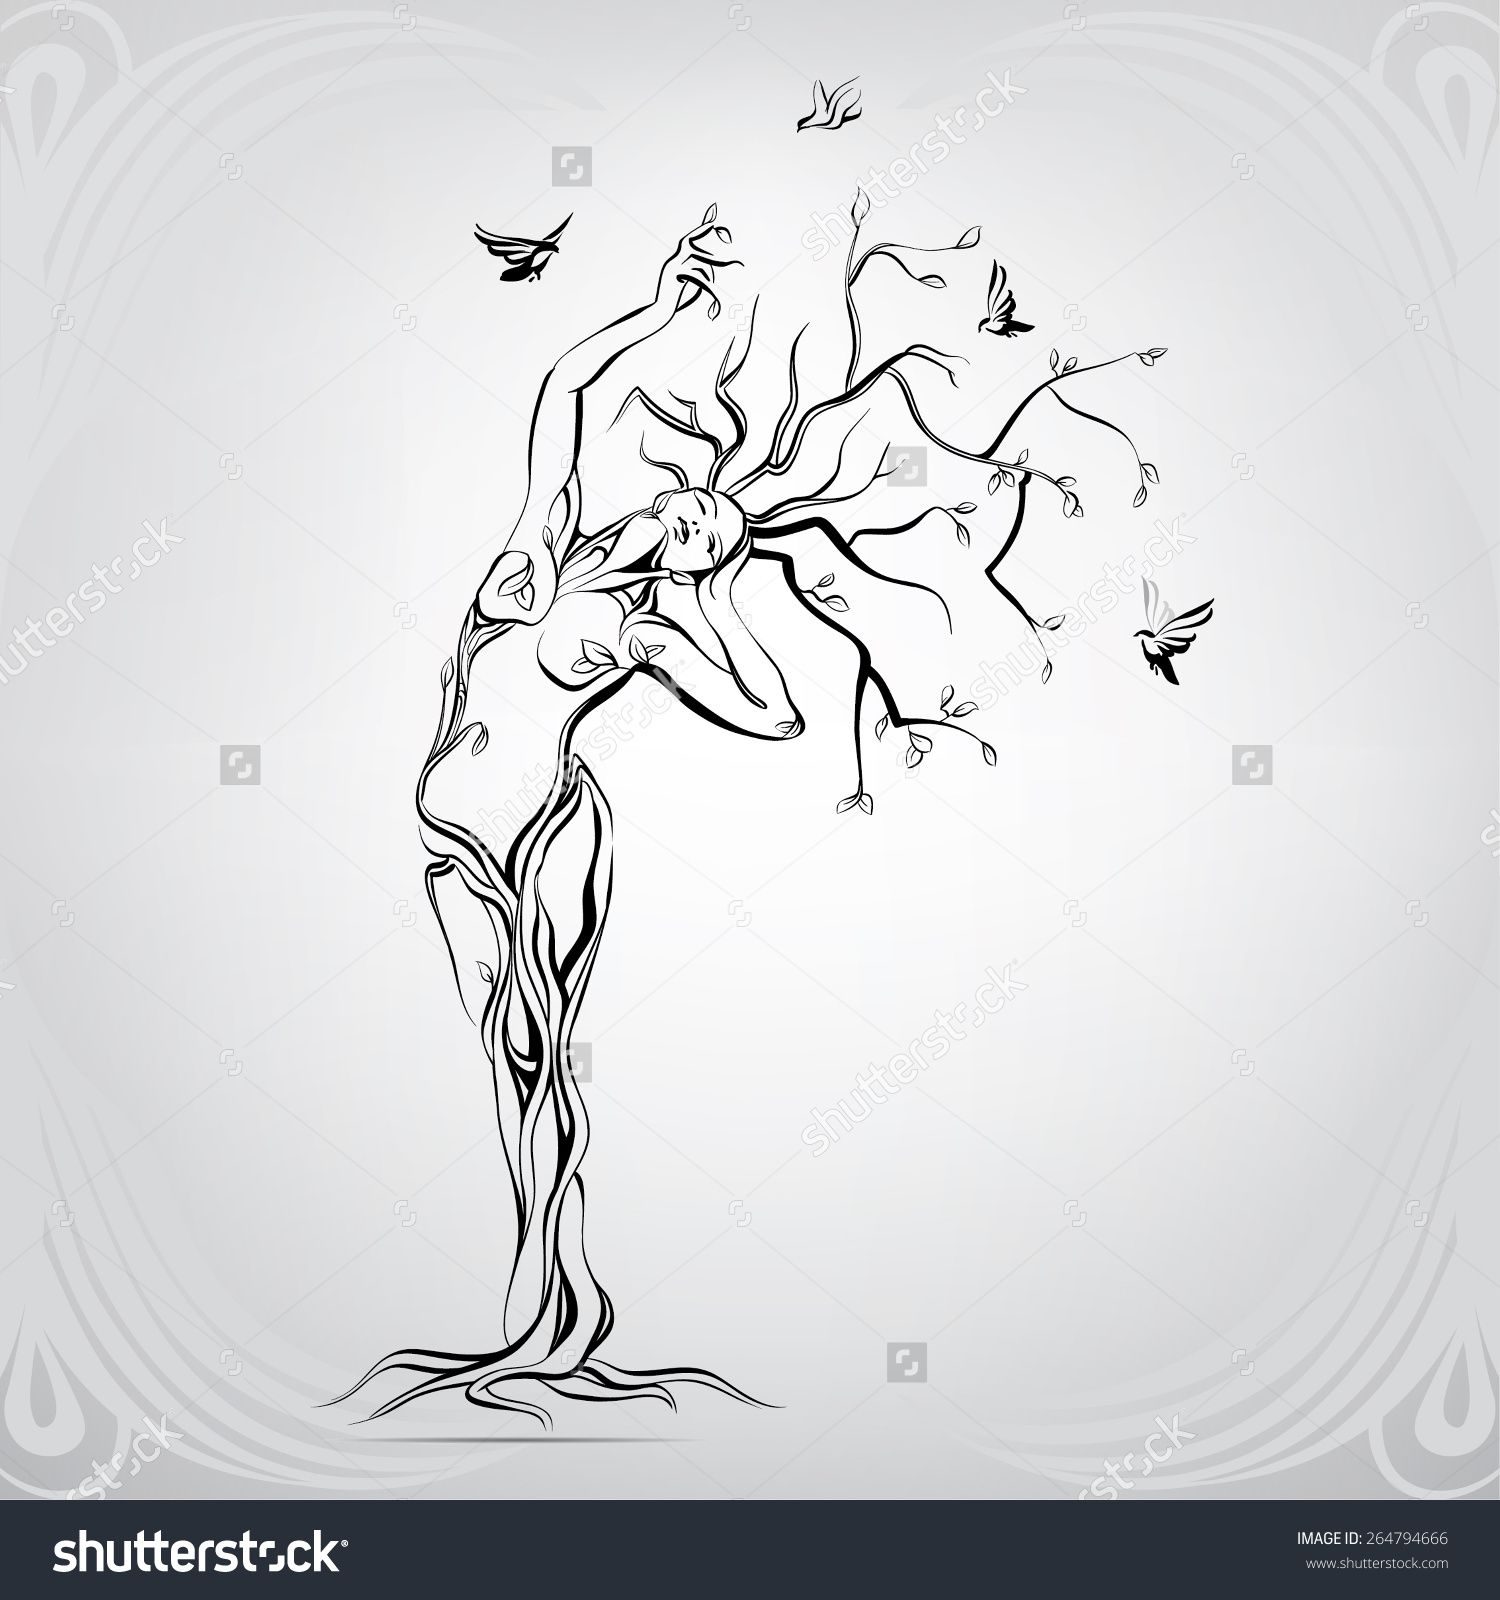 Vector Silhouette Of The Girl In The Form Of A Tree - 264794666 ...